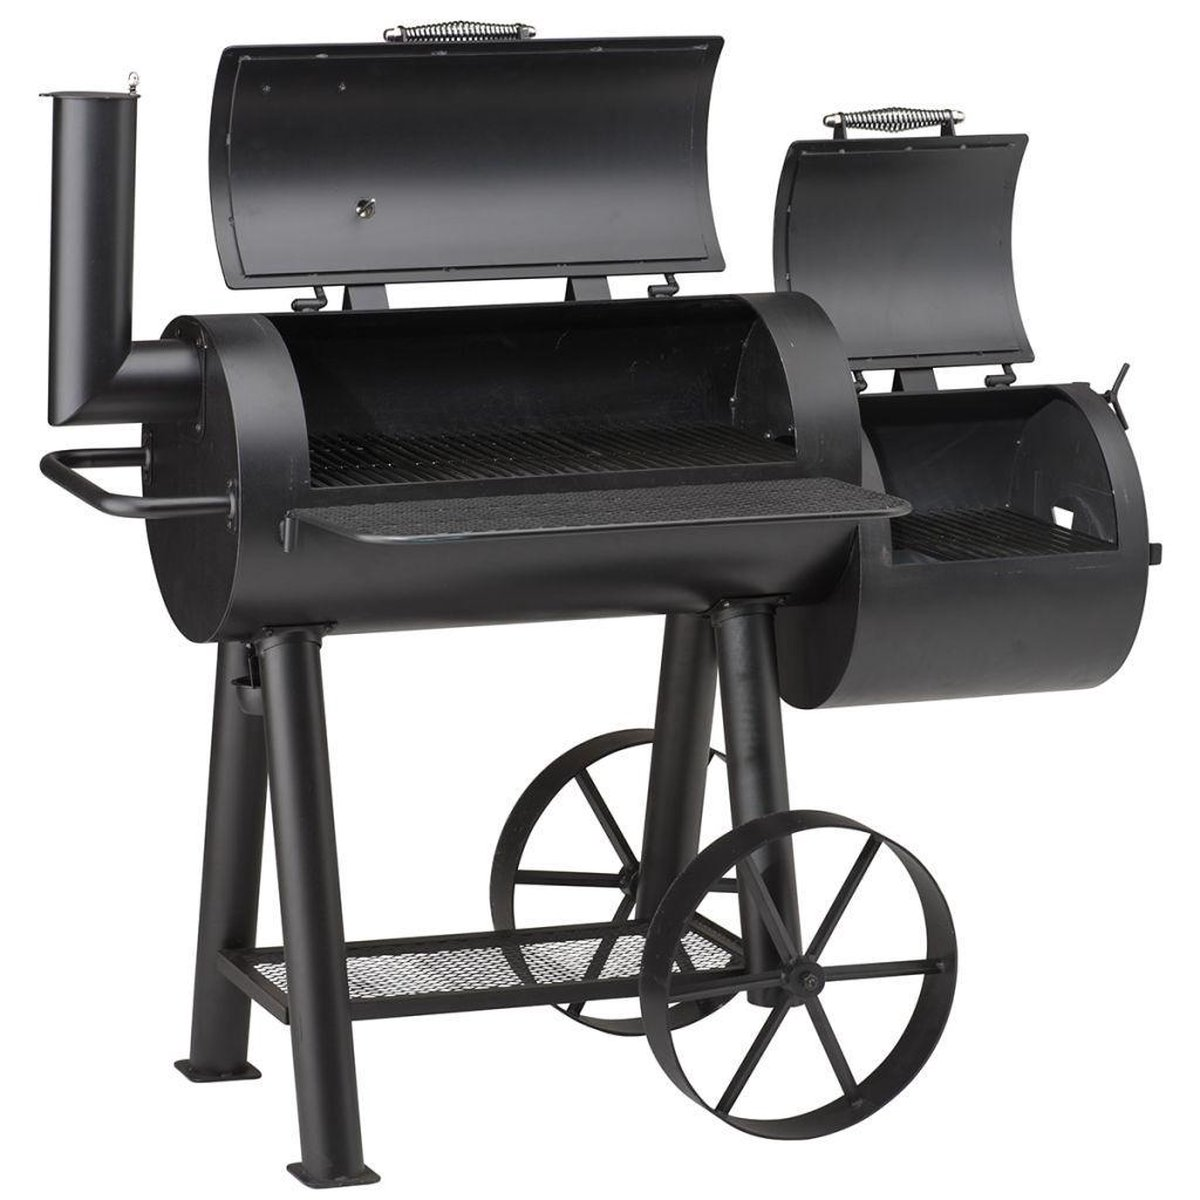 Grillchef by Landmann Tennesee 100 Smoker Barbecue | DGM Outlet